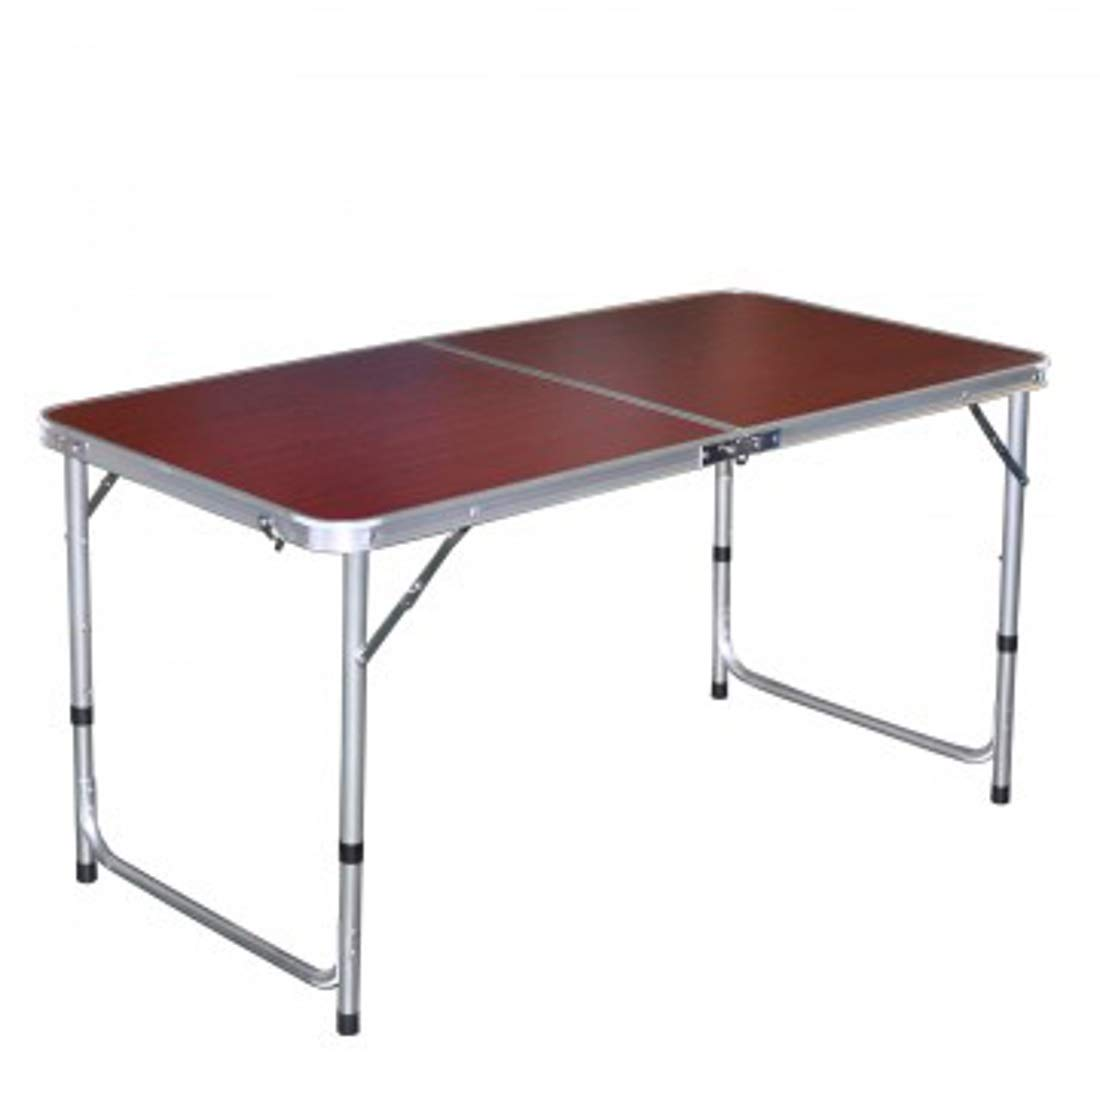 LavoHome Cherry Wood Picnic Table Camping Outdoor Activity Compact & Folding | Durable Aluminium |Easily Open Close| 3 Adjustable Heights | Multipurpose Beach Boat Dining & Cooking